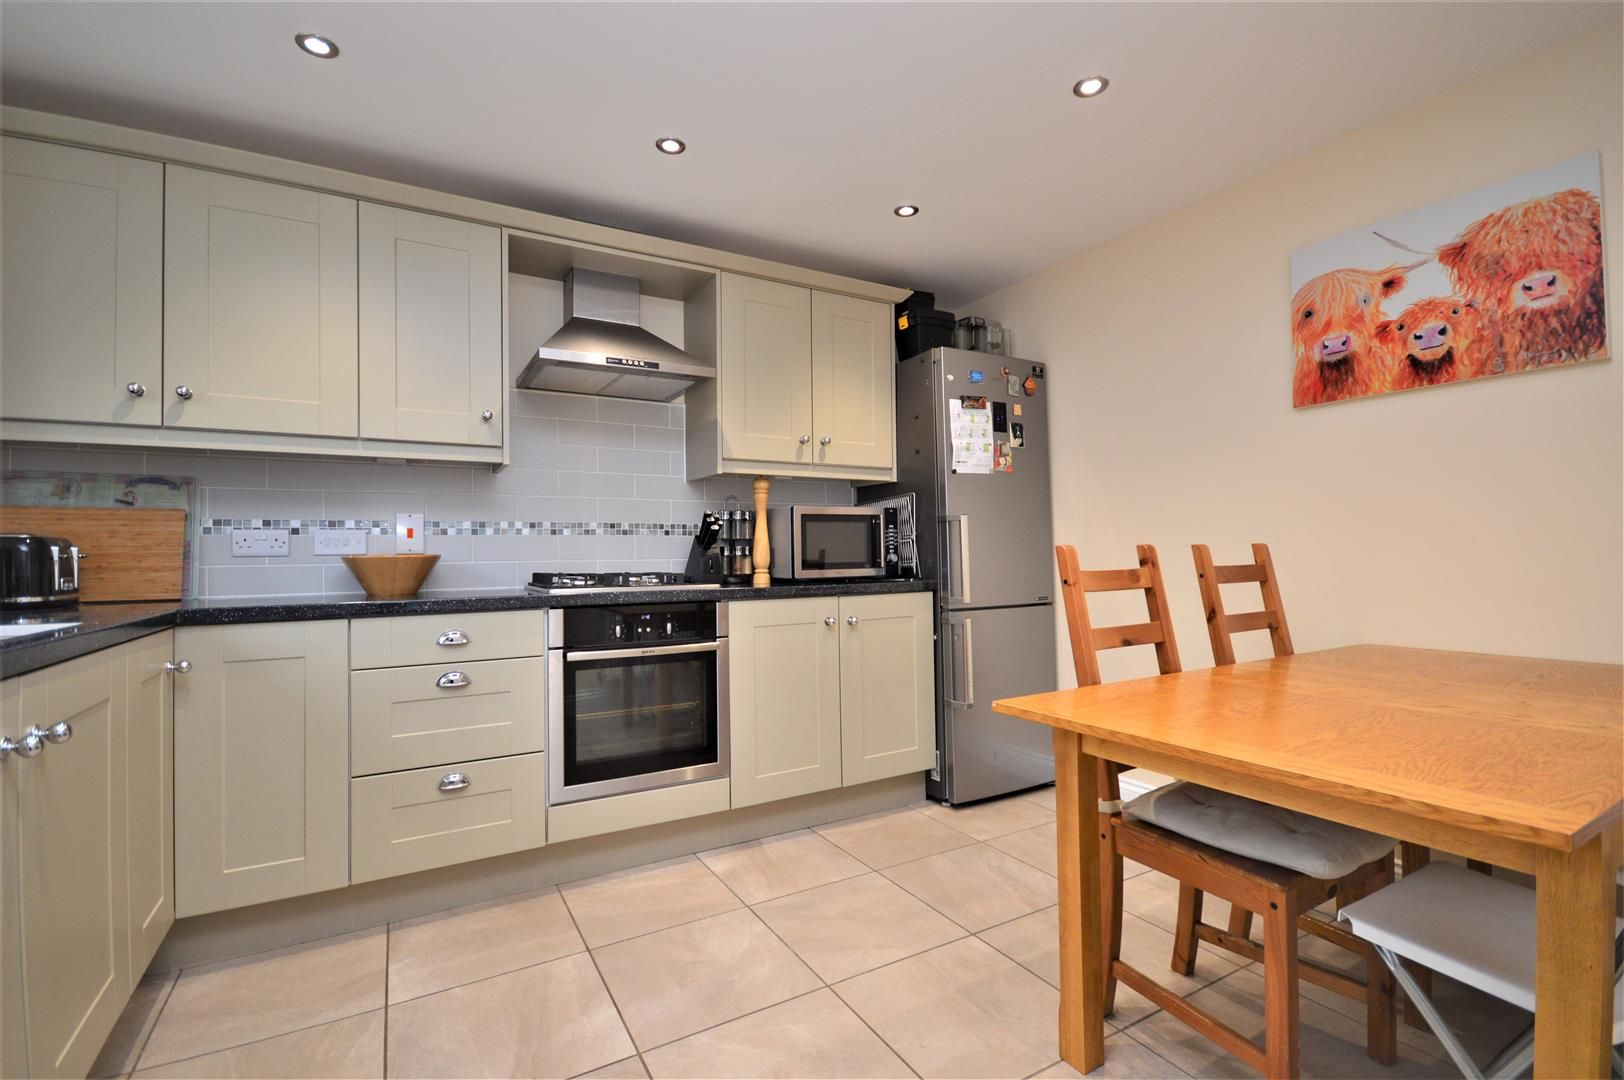 3 bed semi-detached for sale in Bodenham  - Property Image 2